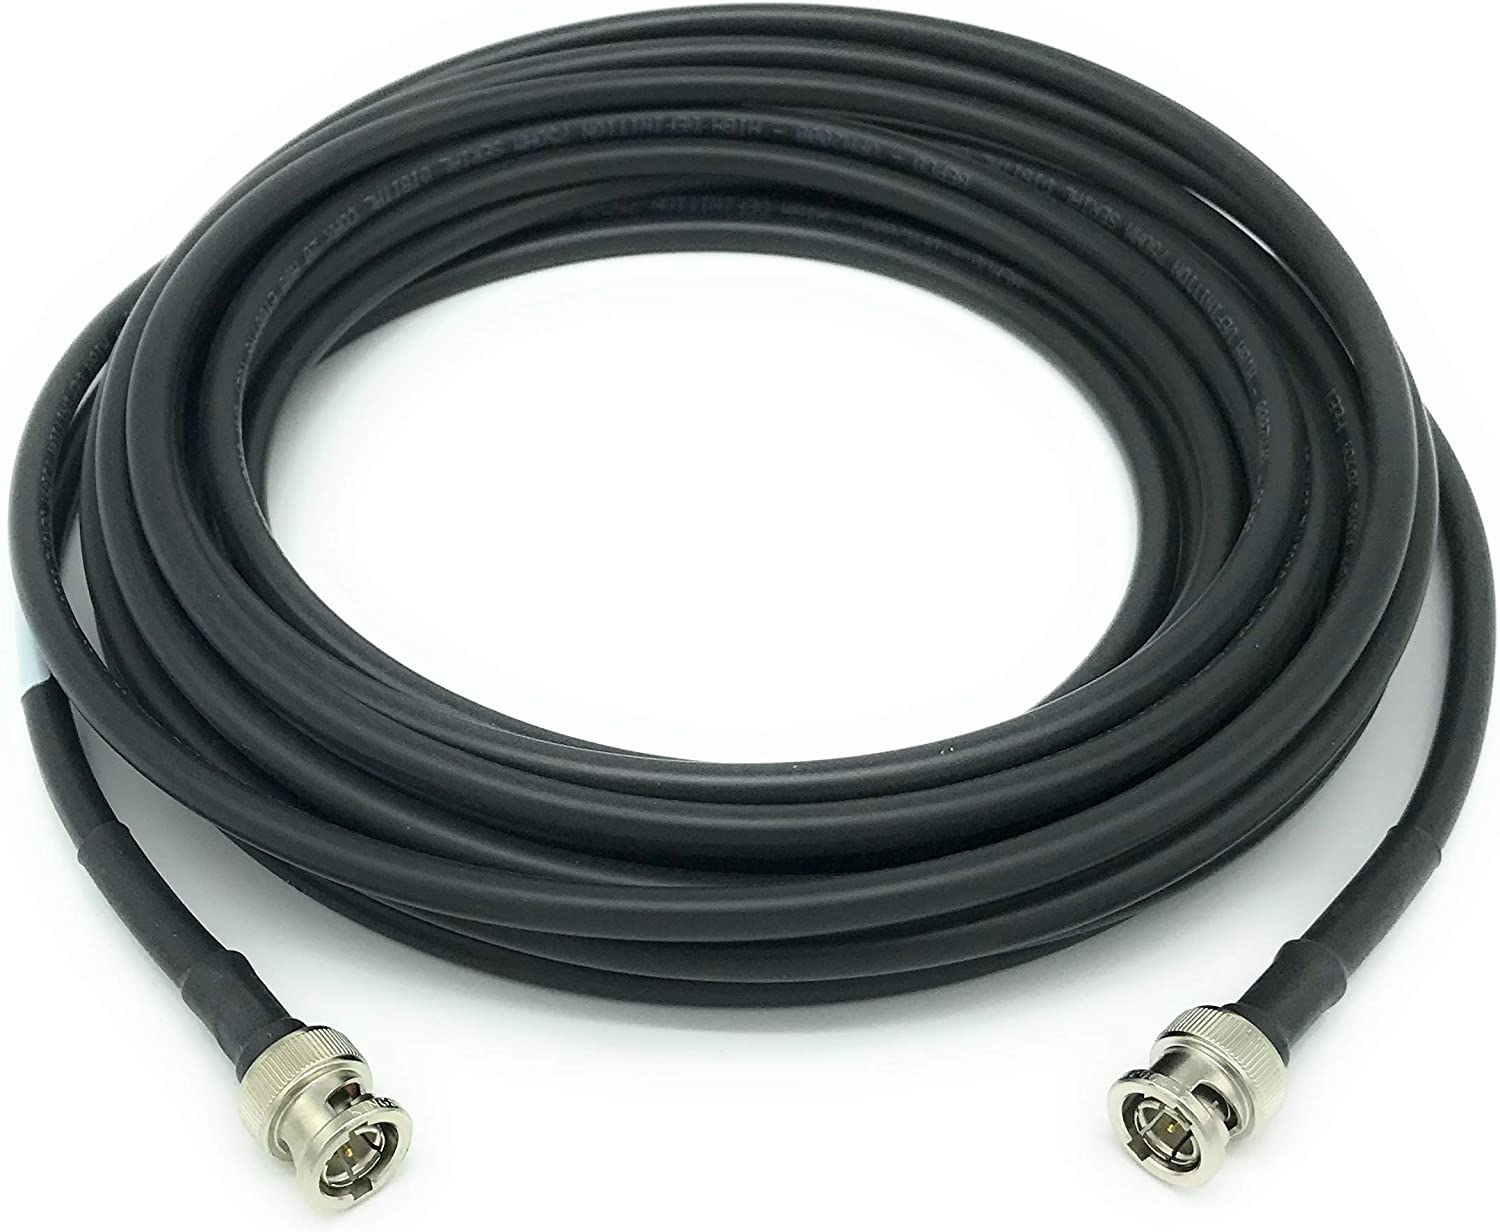 Black BNC RG59 Cable 200ft AV-Cables 3G//6G HD SDI BNC